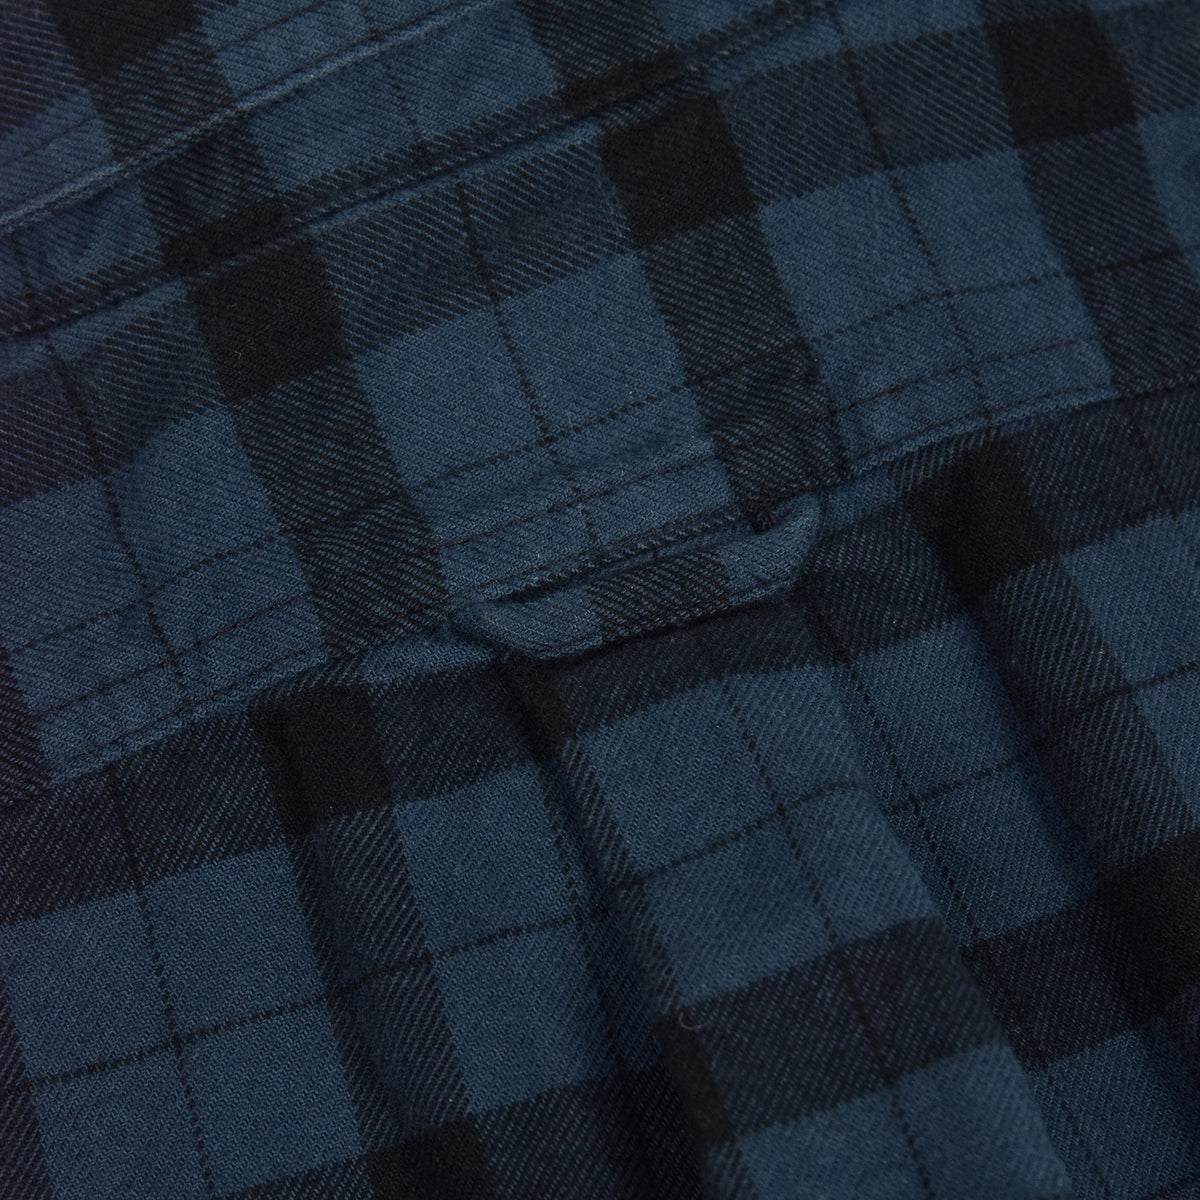 Filson Alaskan Guide Cotton Flannel Shirt Blue/Black Back Detail